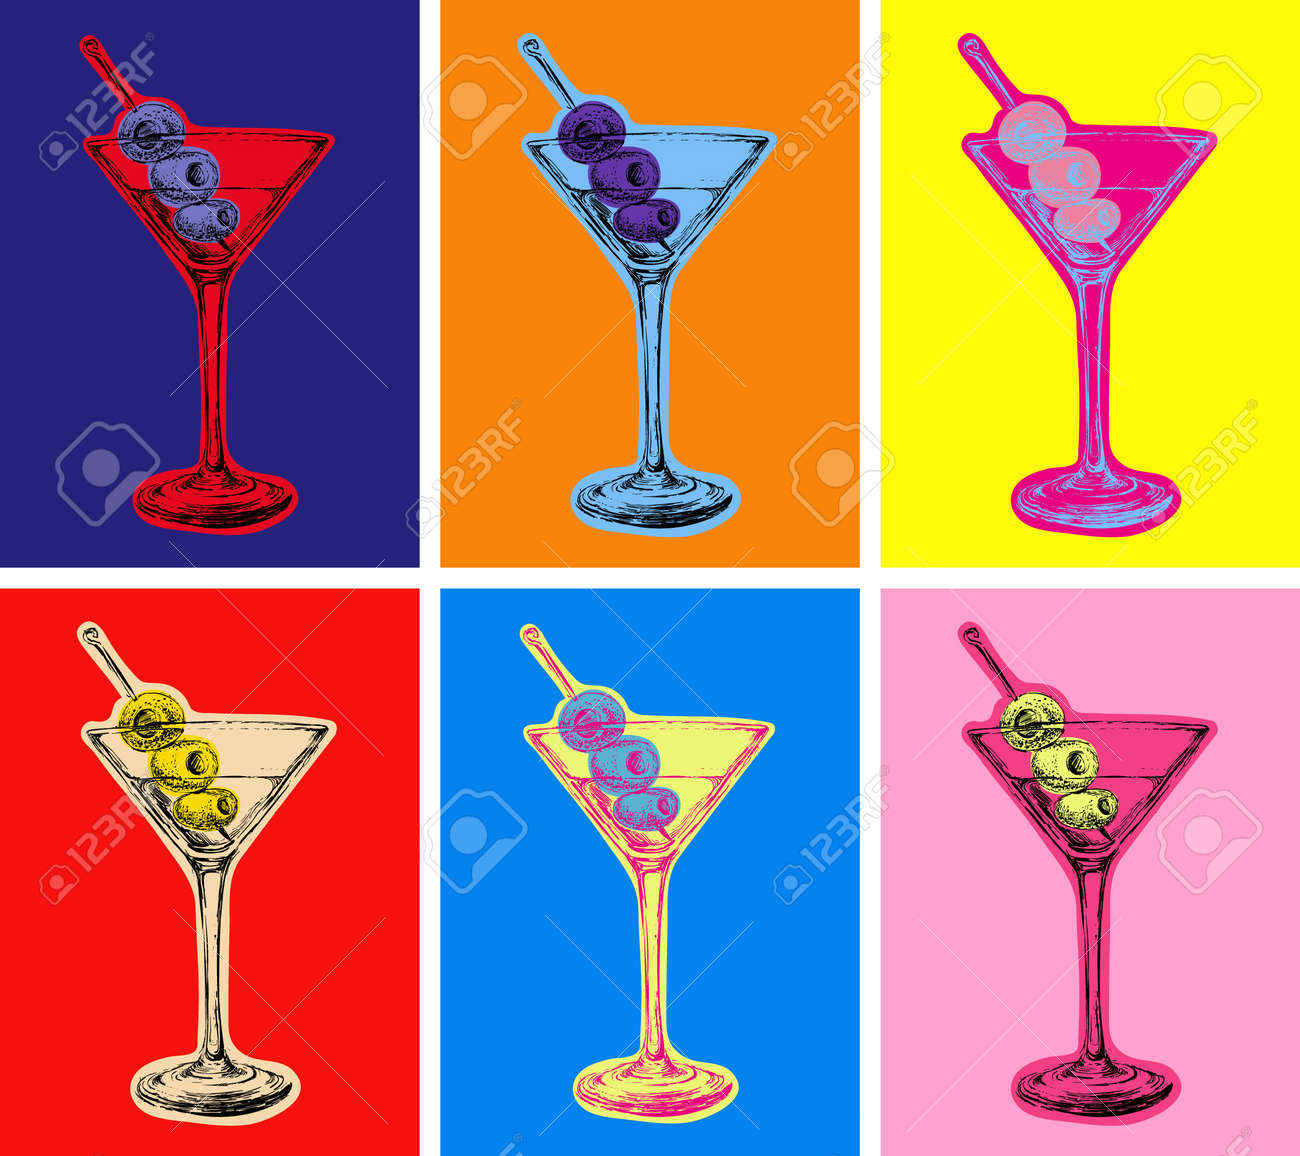 Set of Colored Martini Cocktails with Olives Vector Illustration - 171619480